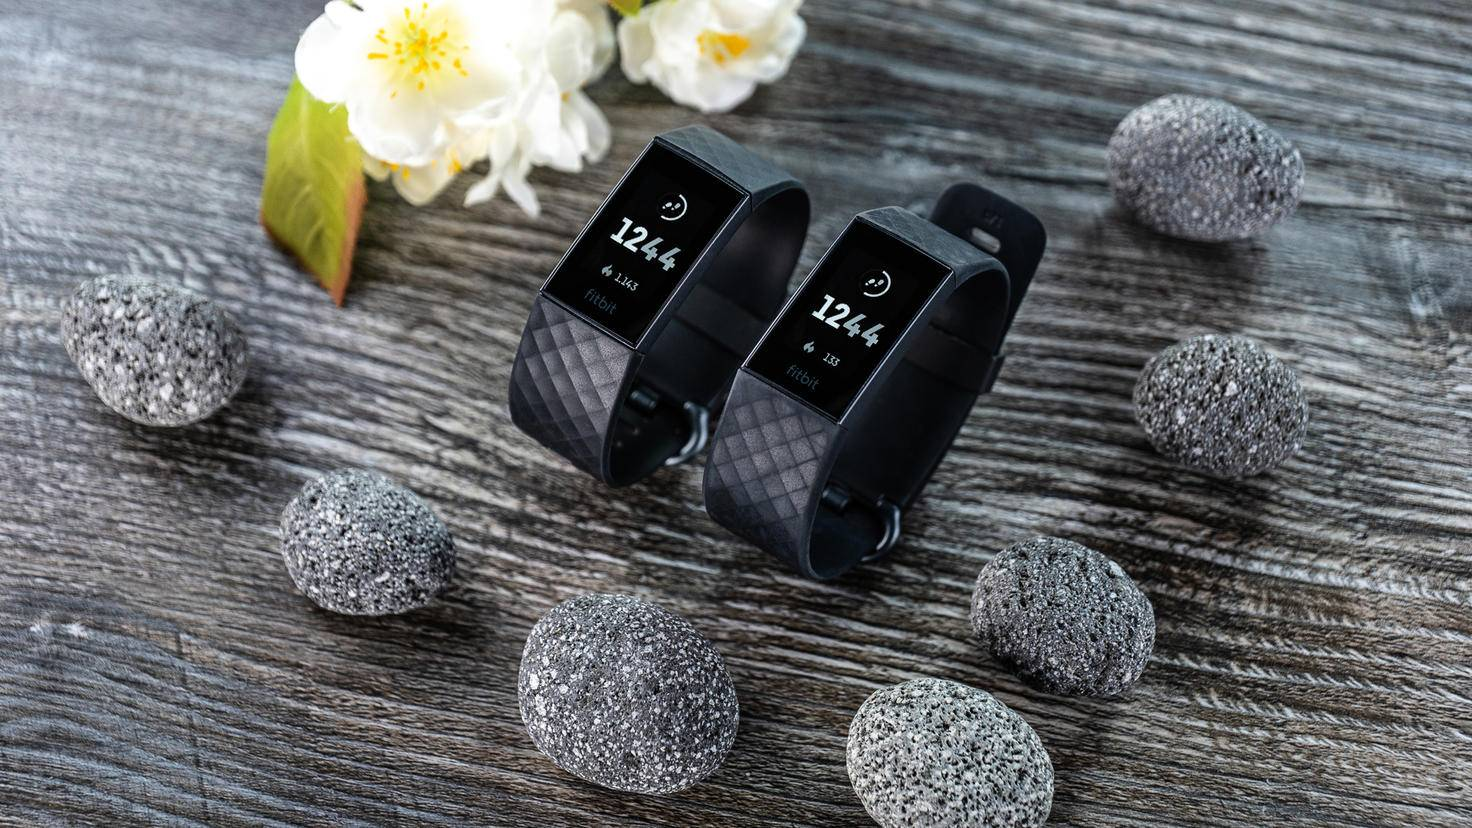 Fitbit Charge 4 und Fitbit Charge 3